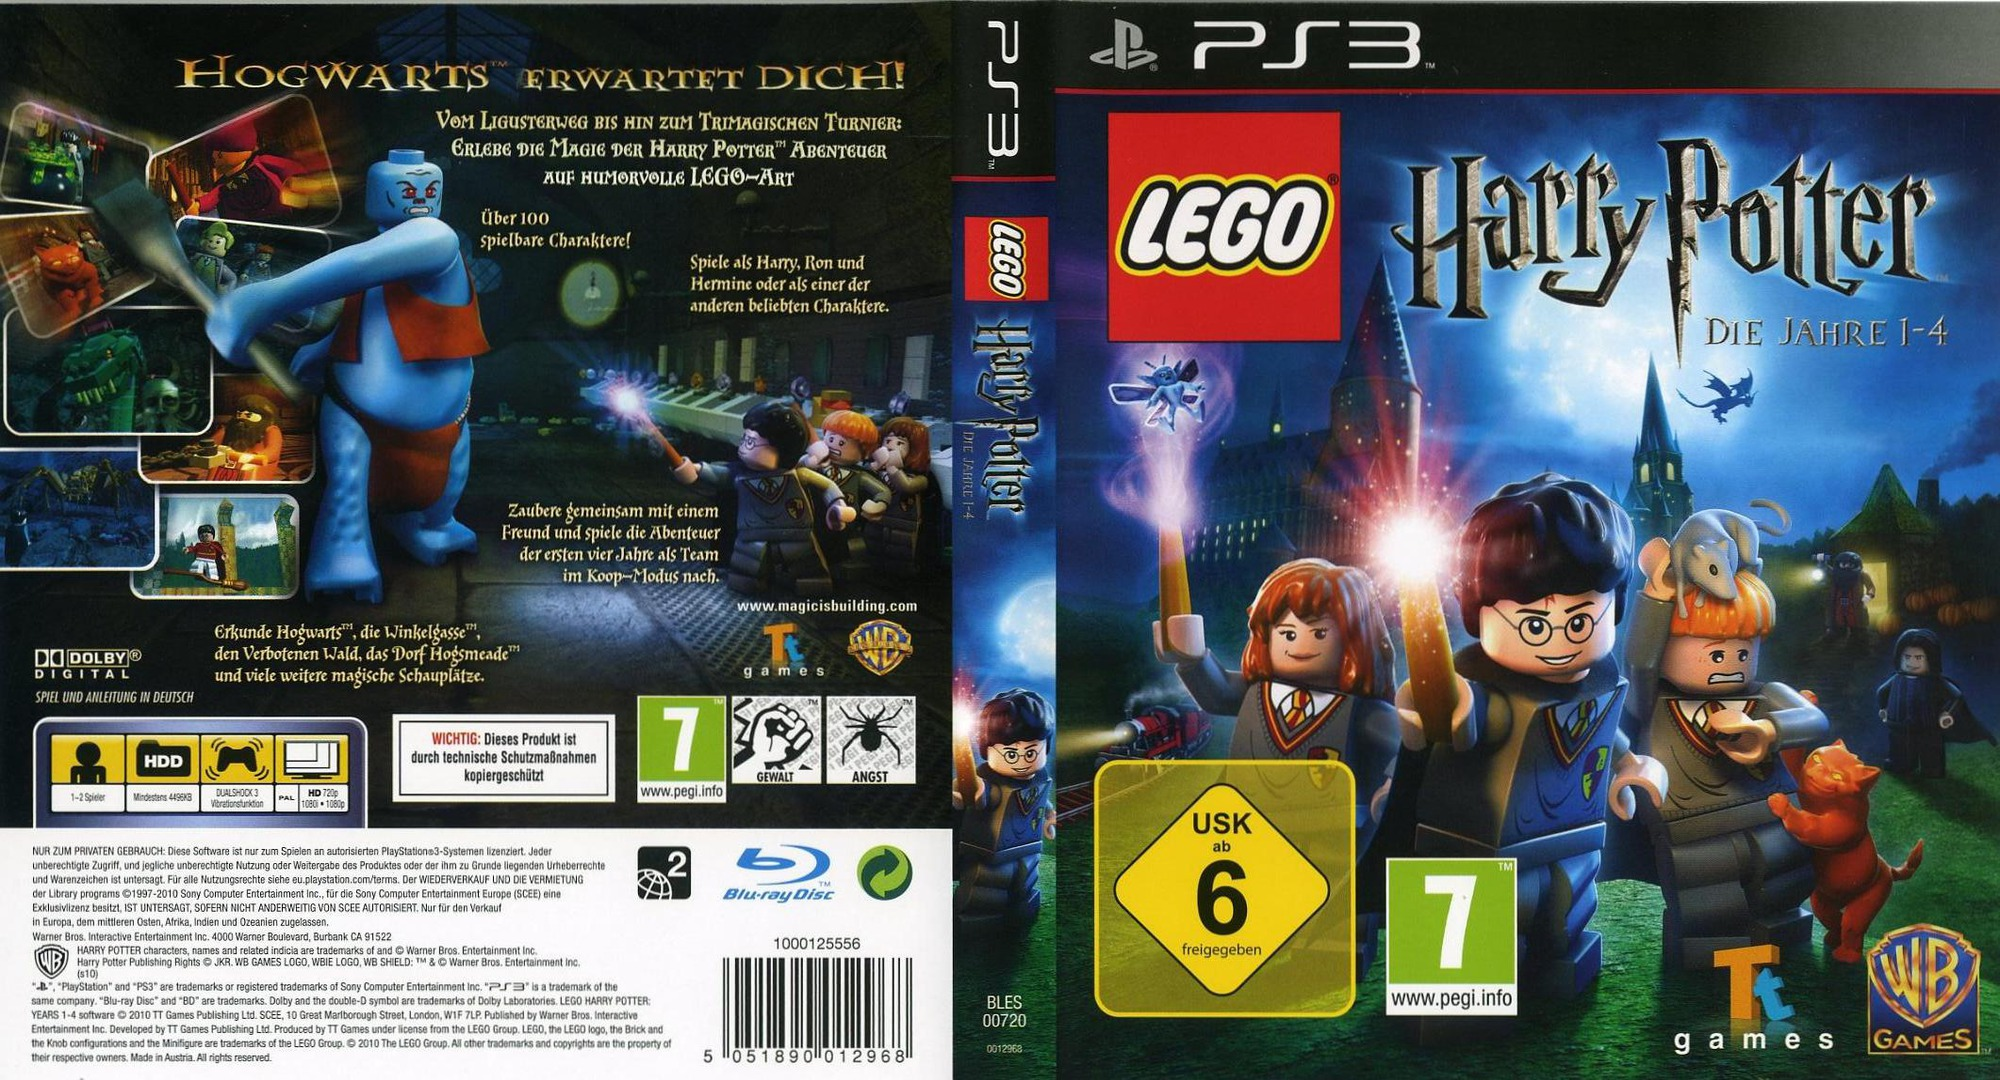 LEGO Harry Potter: Die Jahre 1-4 PS3 coverfullHQ (BLES00720)